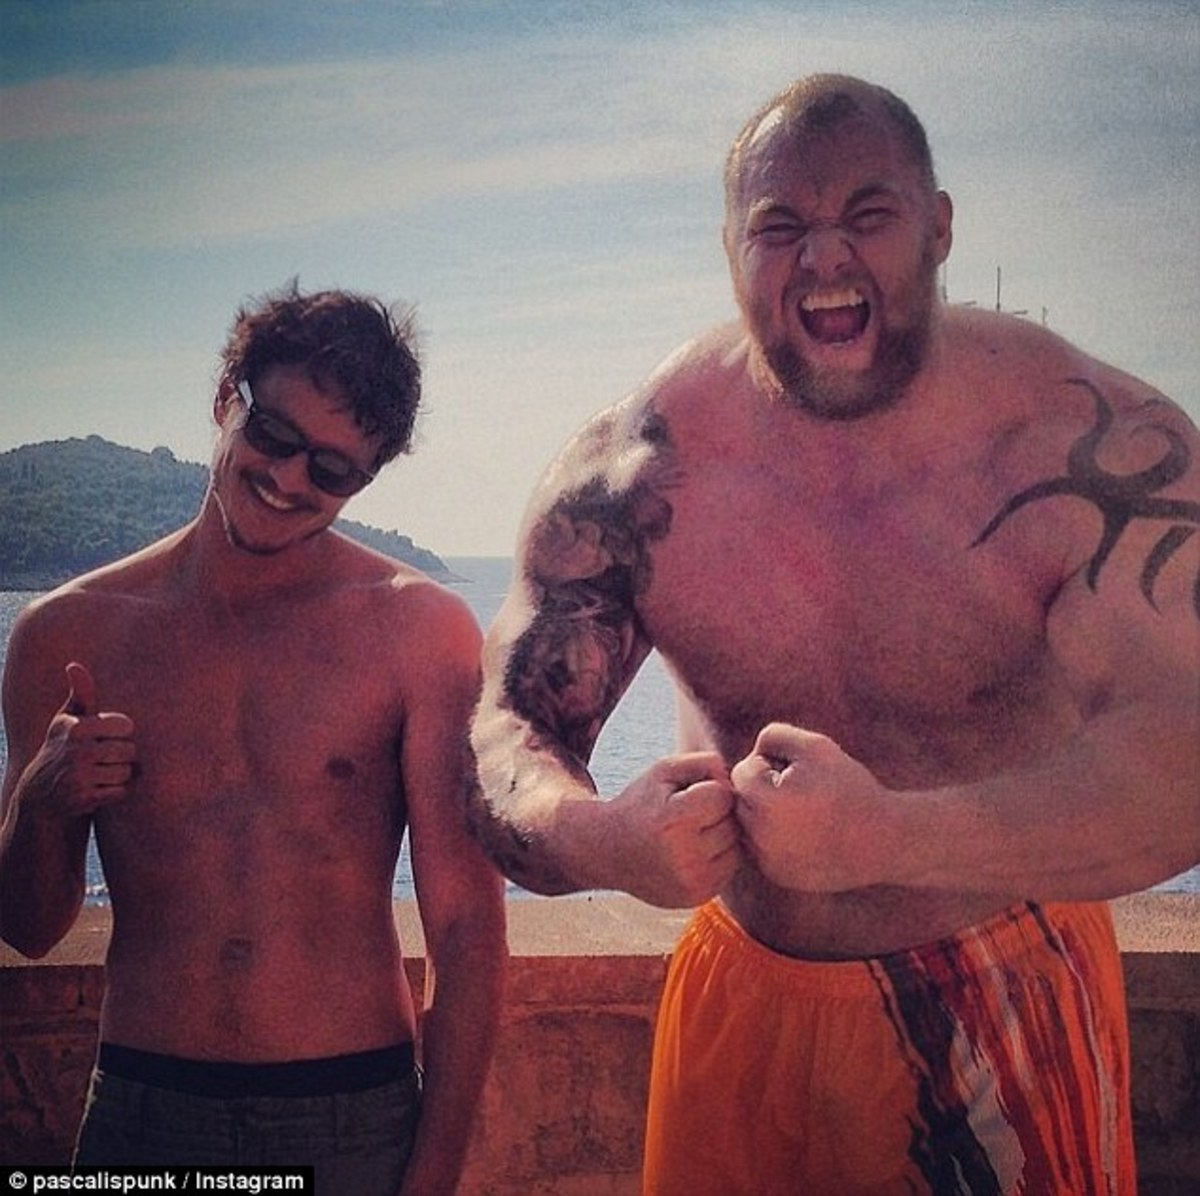 Here we have a normal sized man next to a mountain of a man (I'm good at puns)